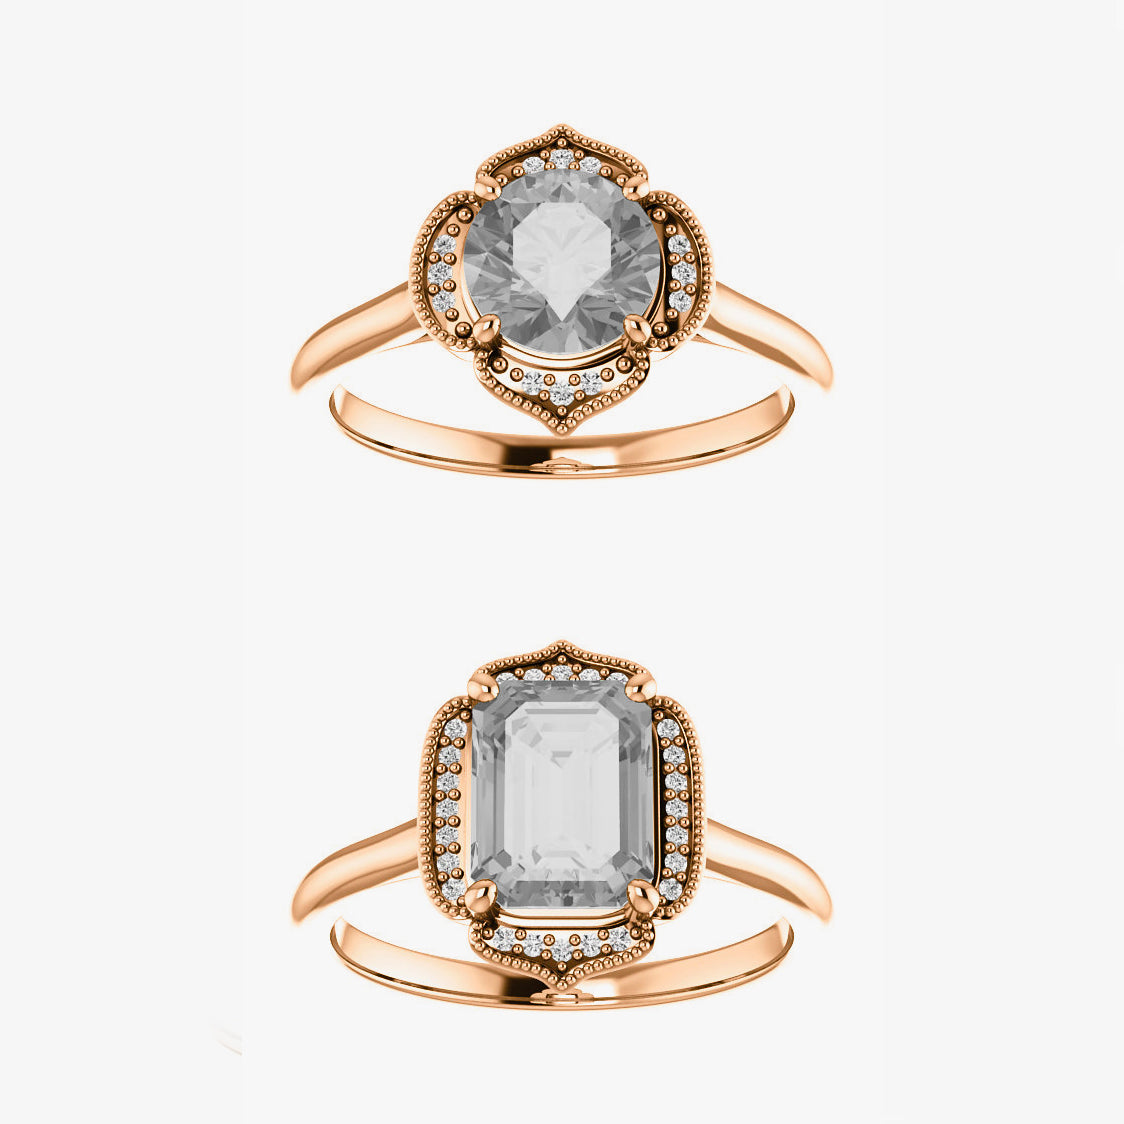 Clementine Setting - Salt & Pepper Celestial Diamond Engagement Rings and Wedding Bands  by Midwinter Co.